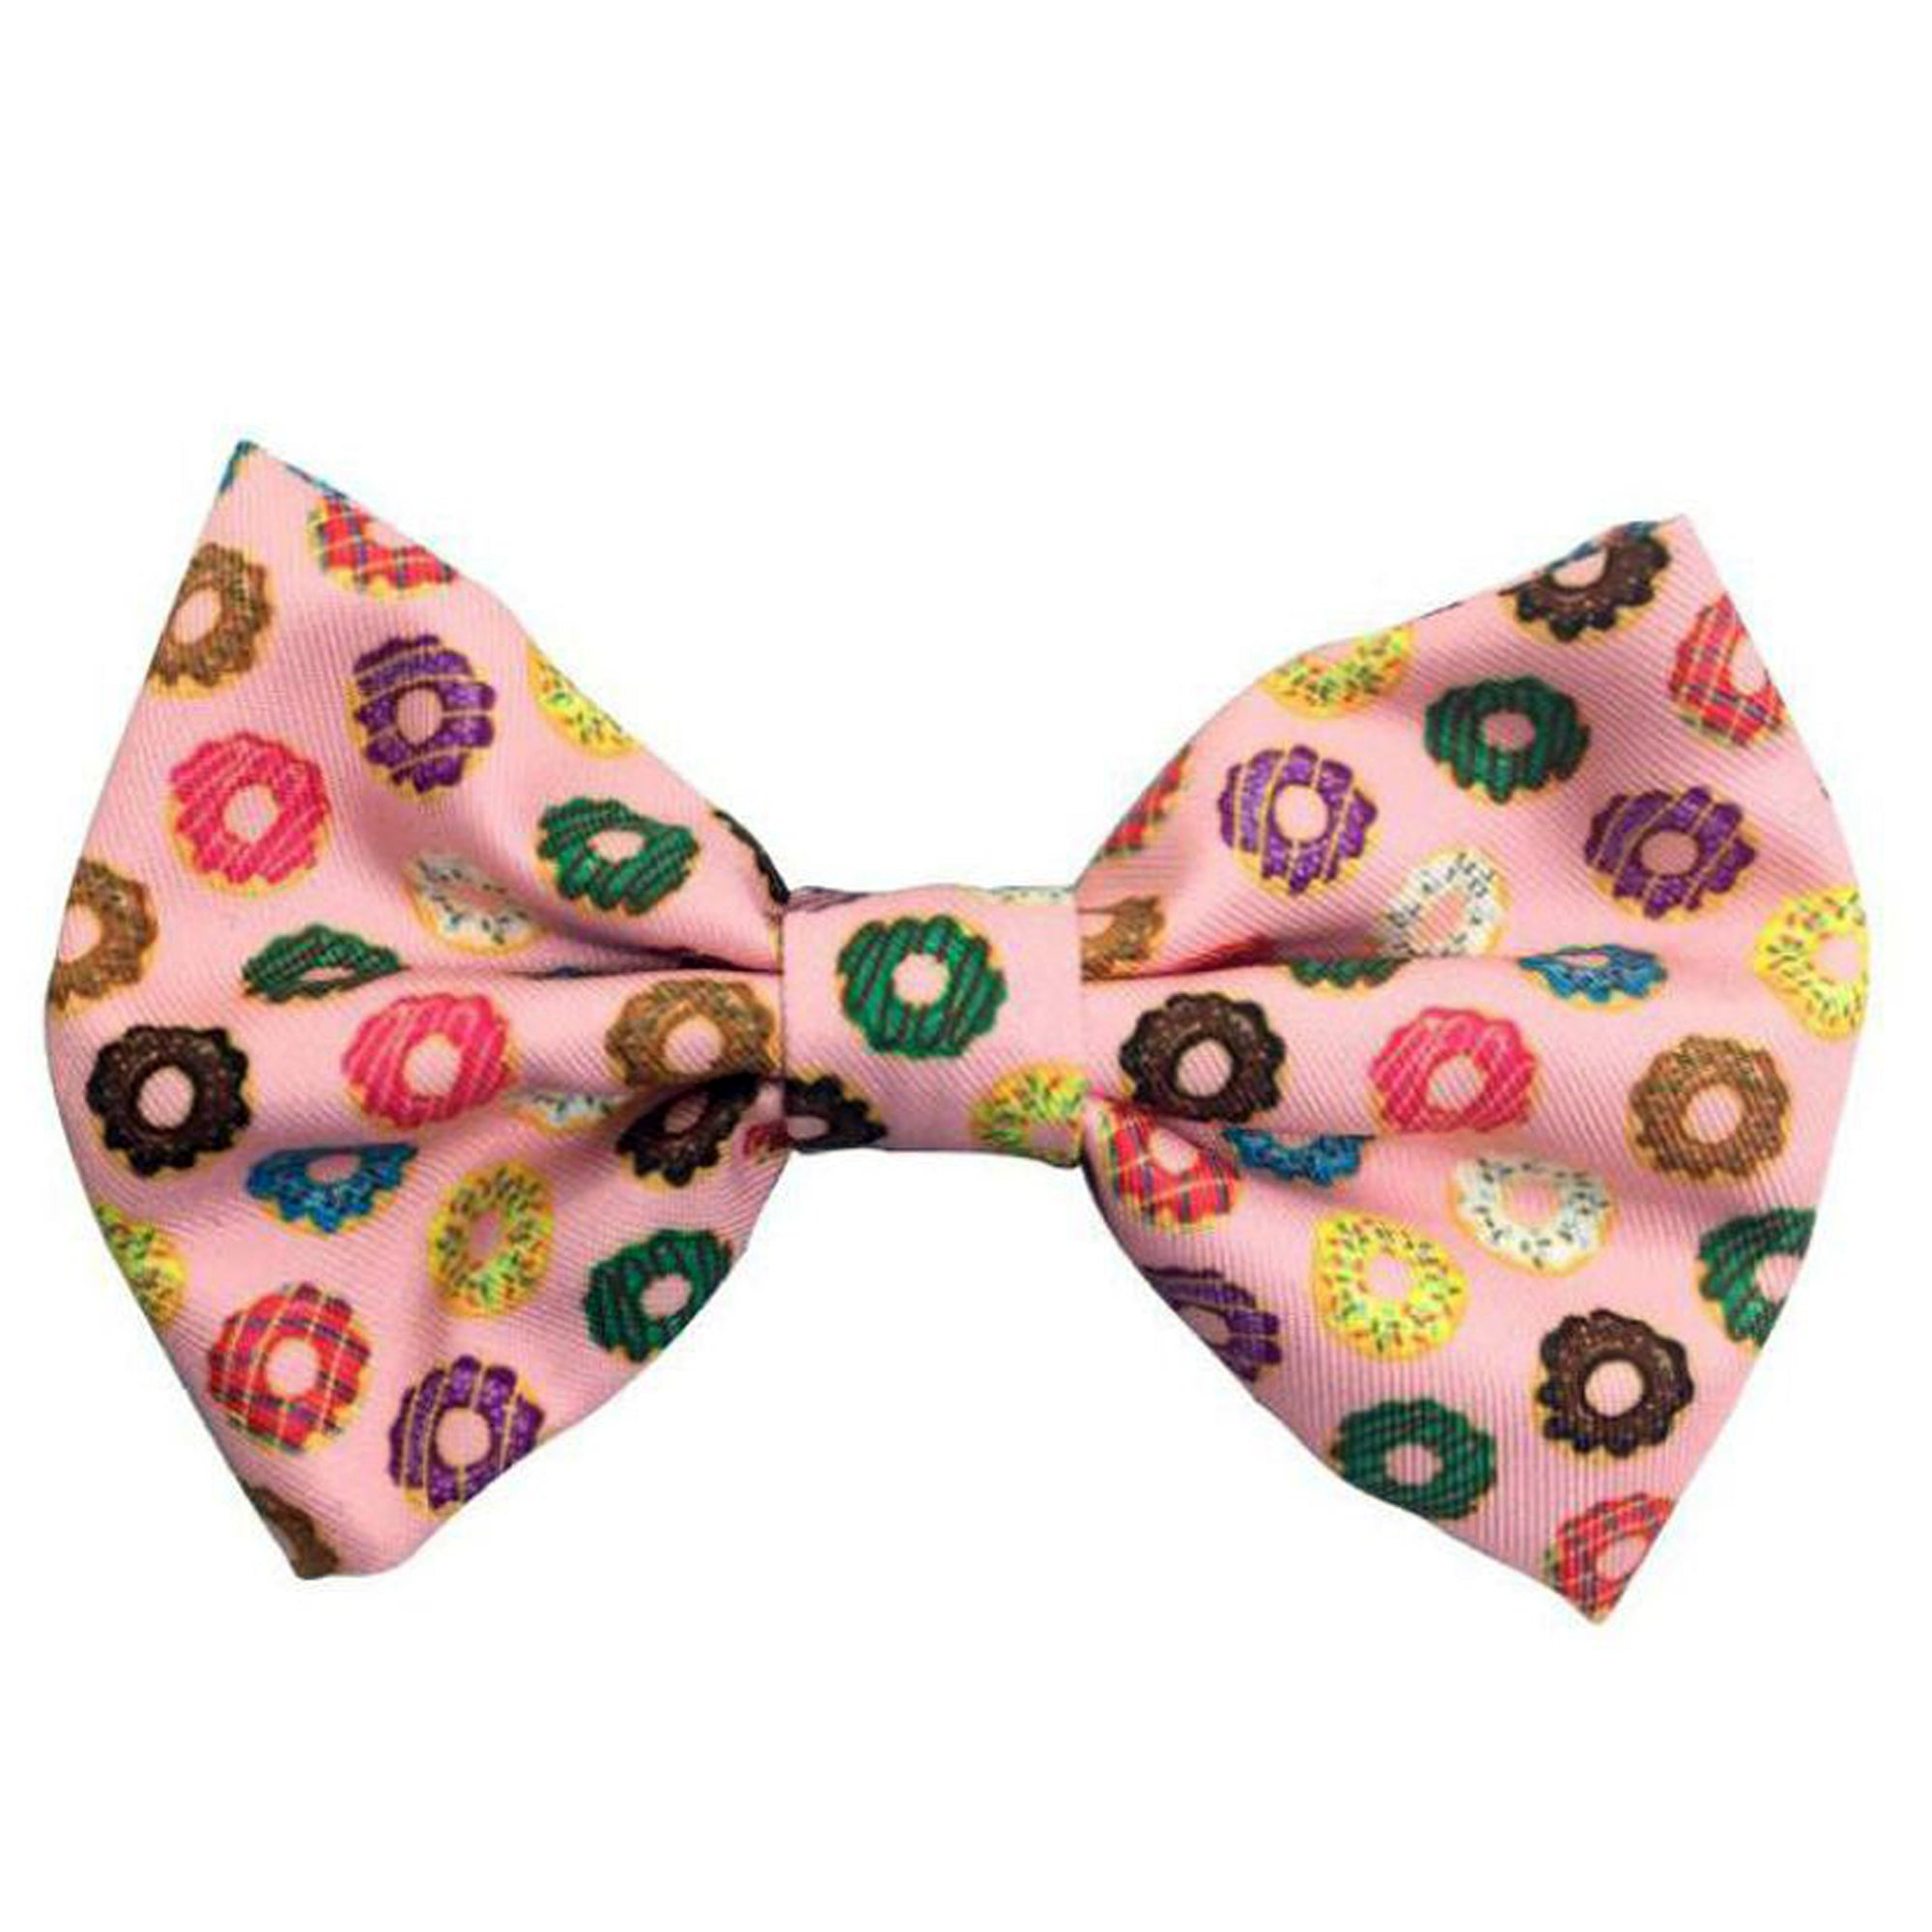 Frenchiestore-Hundehaustier Bowtie-Rosa bowties